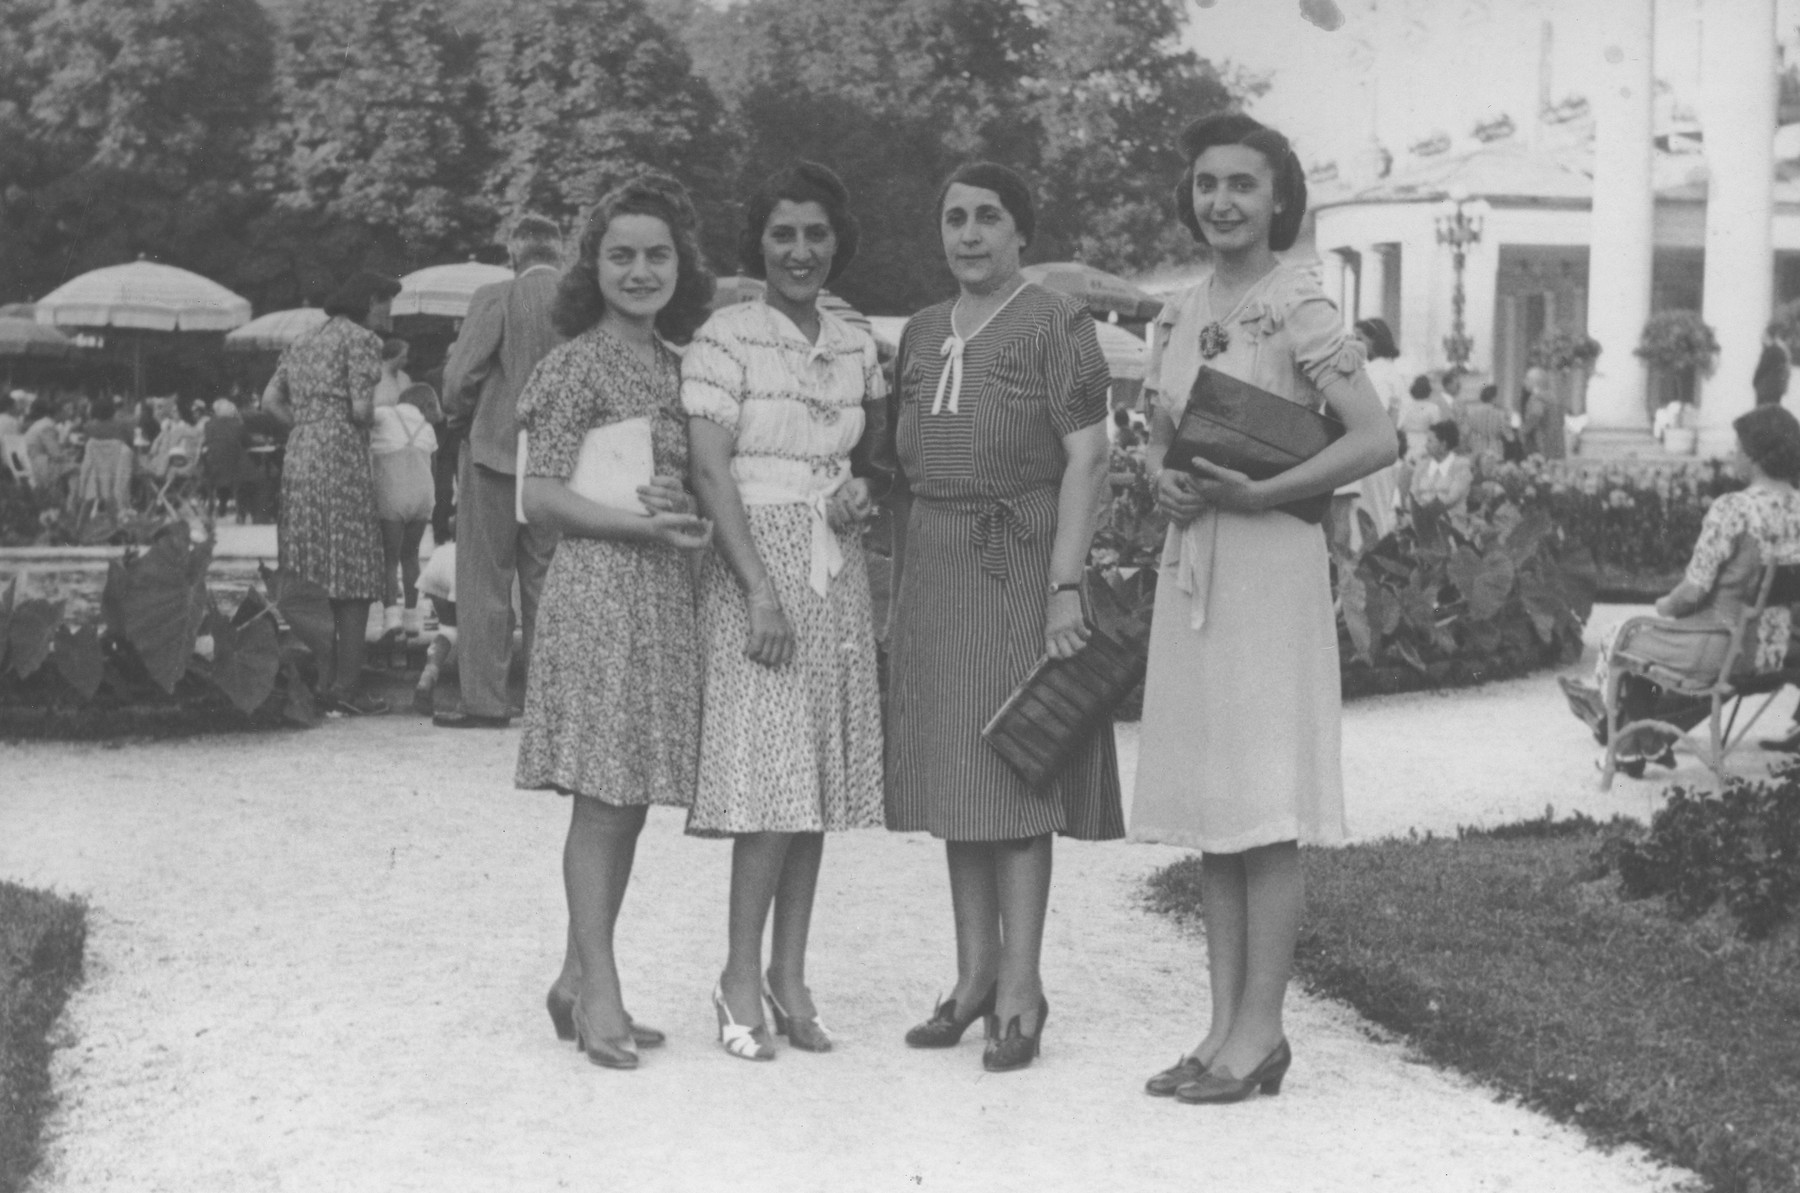 Florica Kabilio poses with her mother and two aunts at a resort in Zagreb.